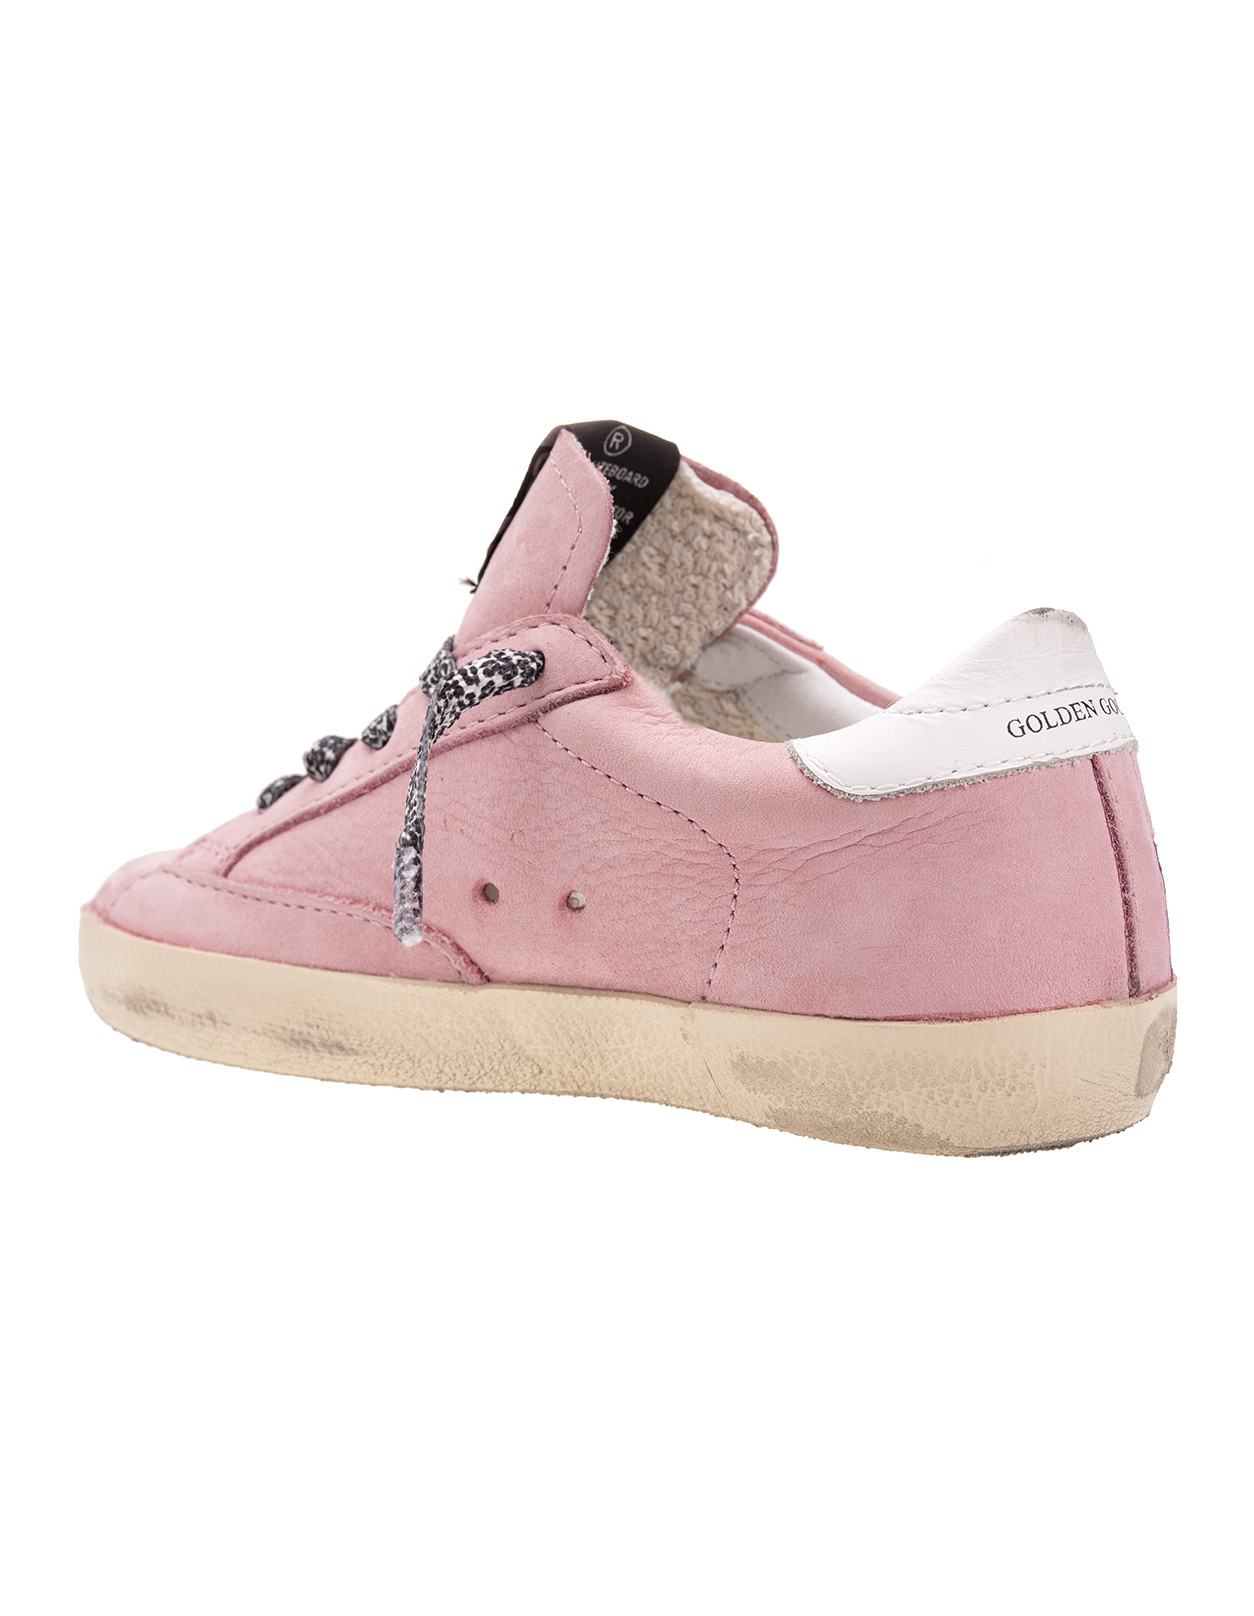 separation shoes 971f1 51d4c Sneakers Superstar Golden Goose Kids Rosa Con Stella Glitter